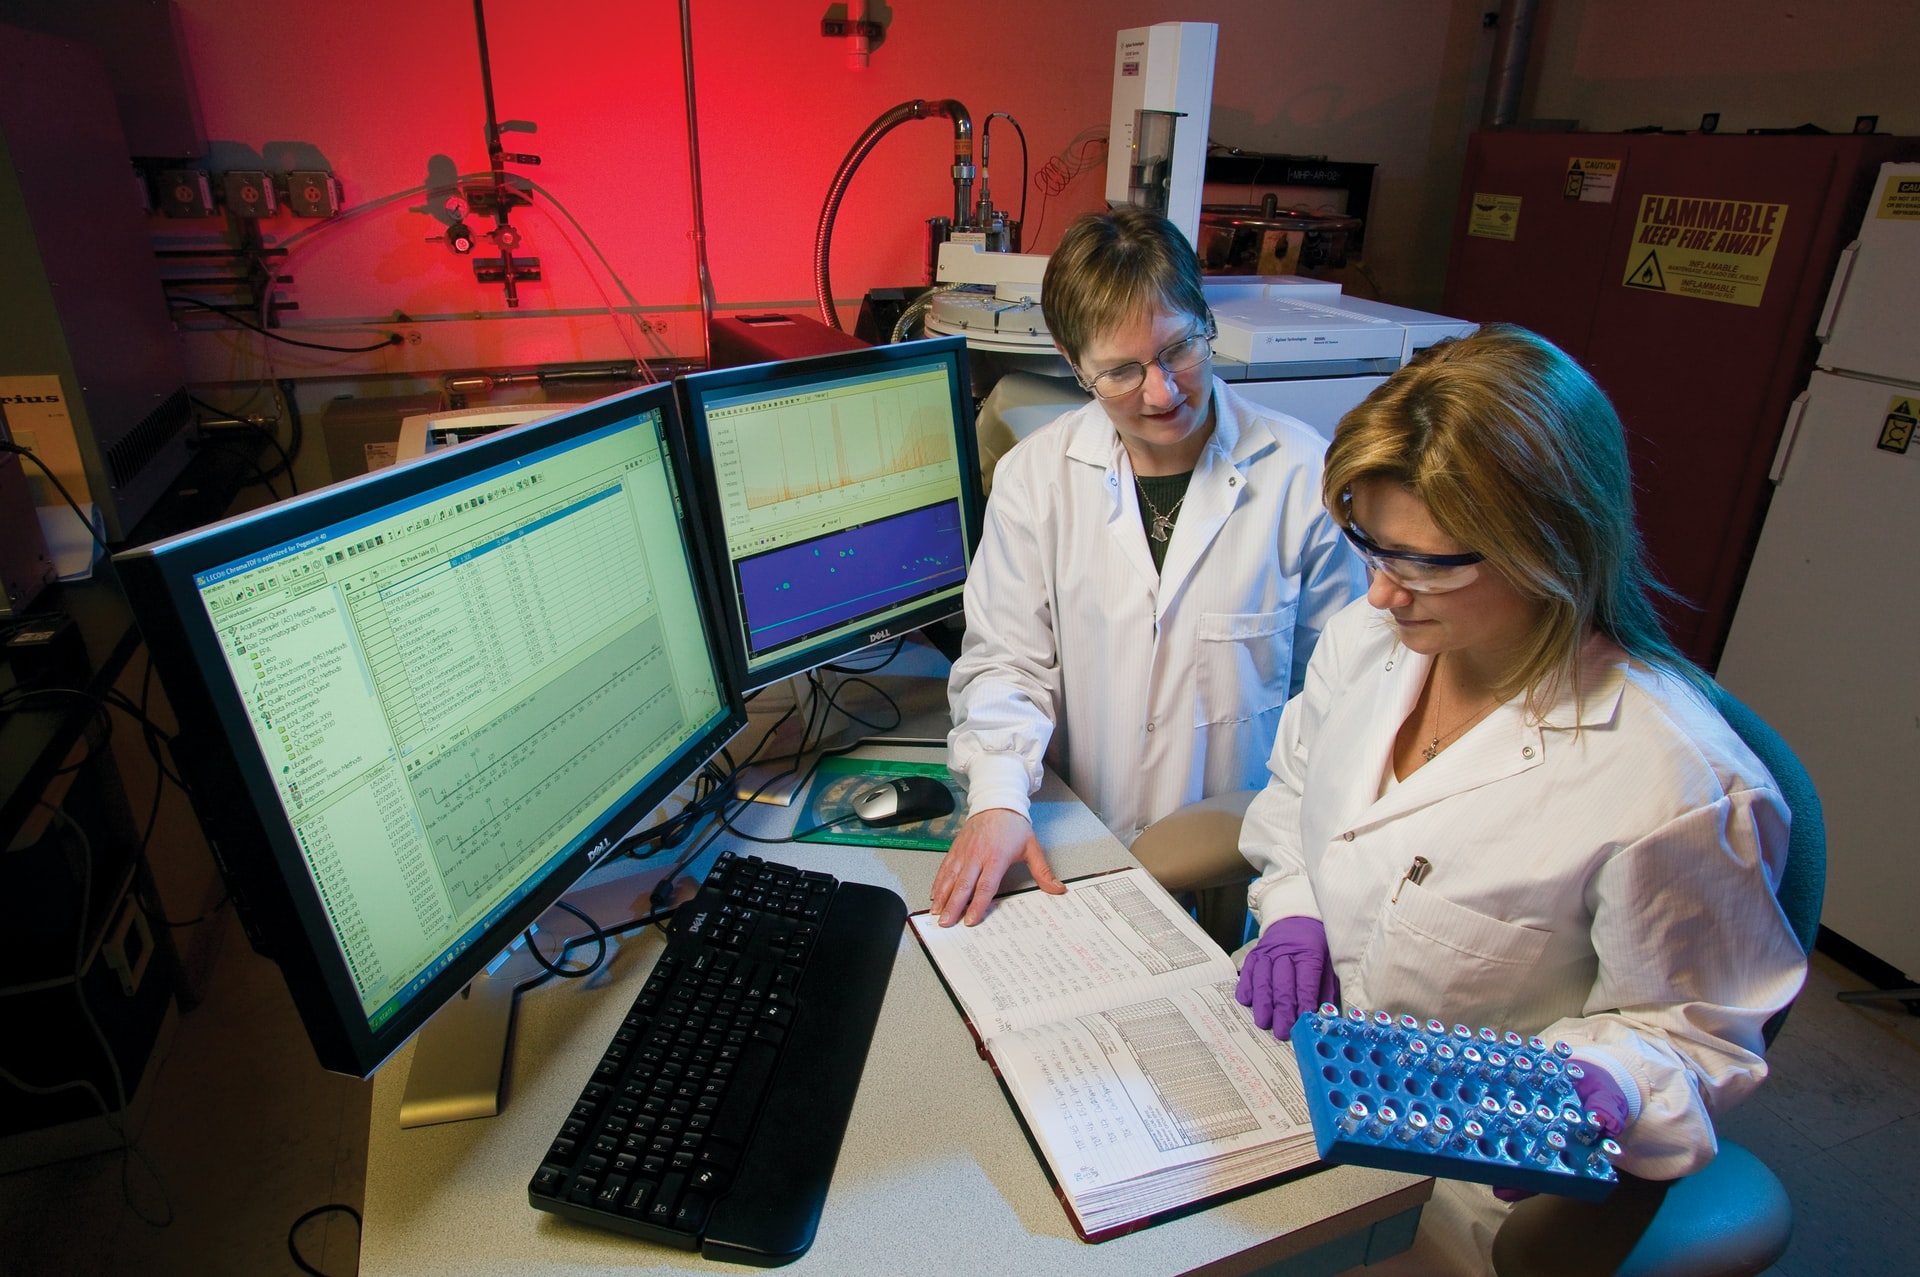 5 Emerging Trends That Make Working in a Lab Better Than Ever